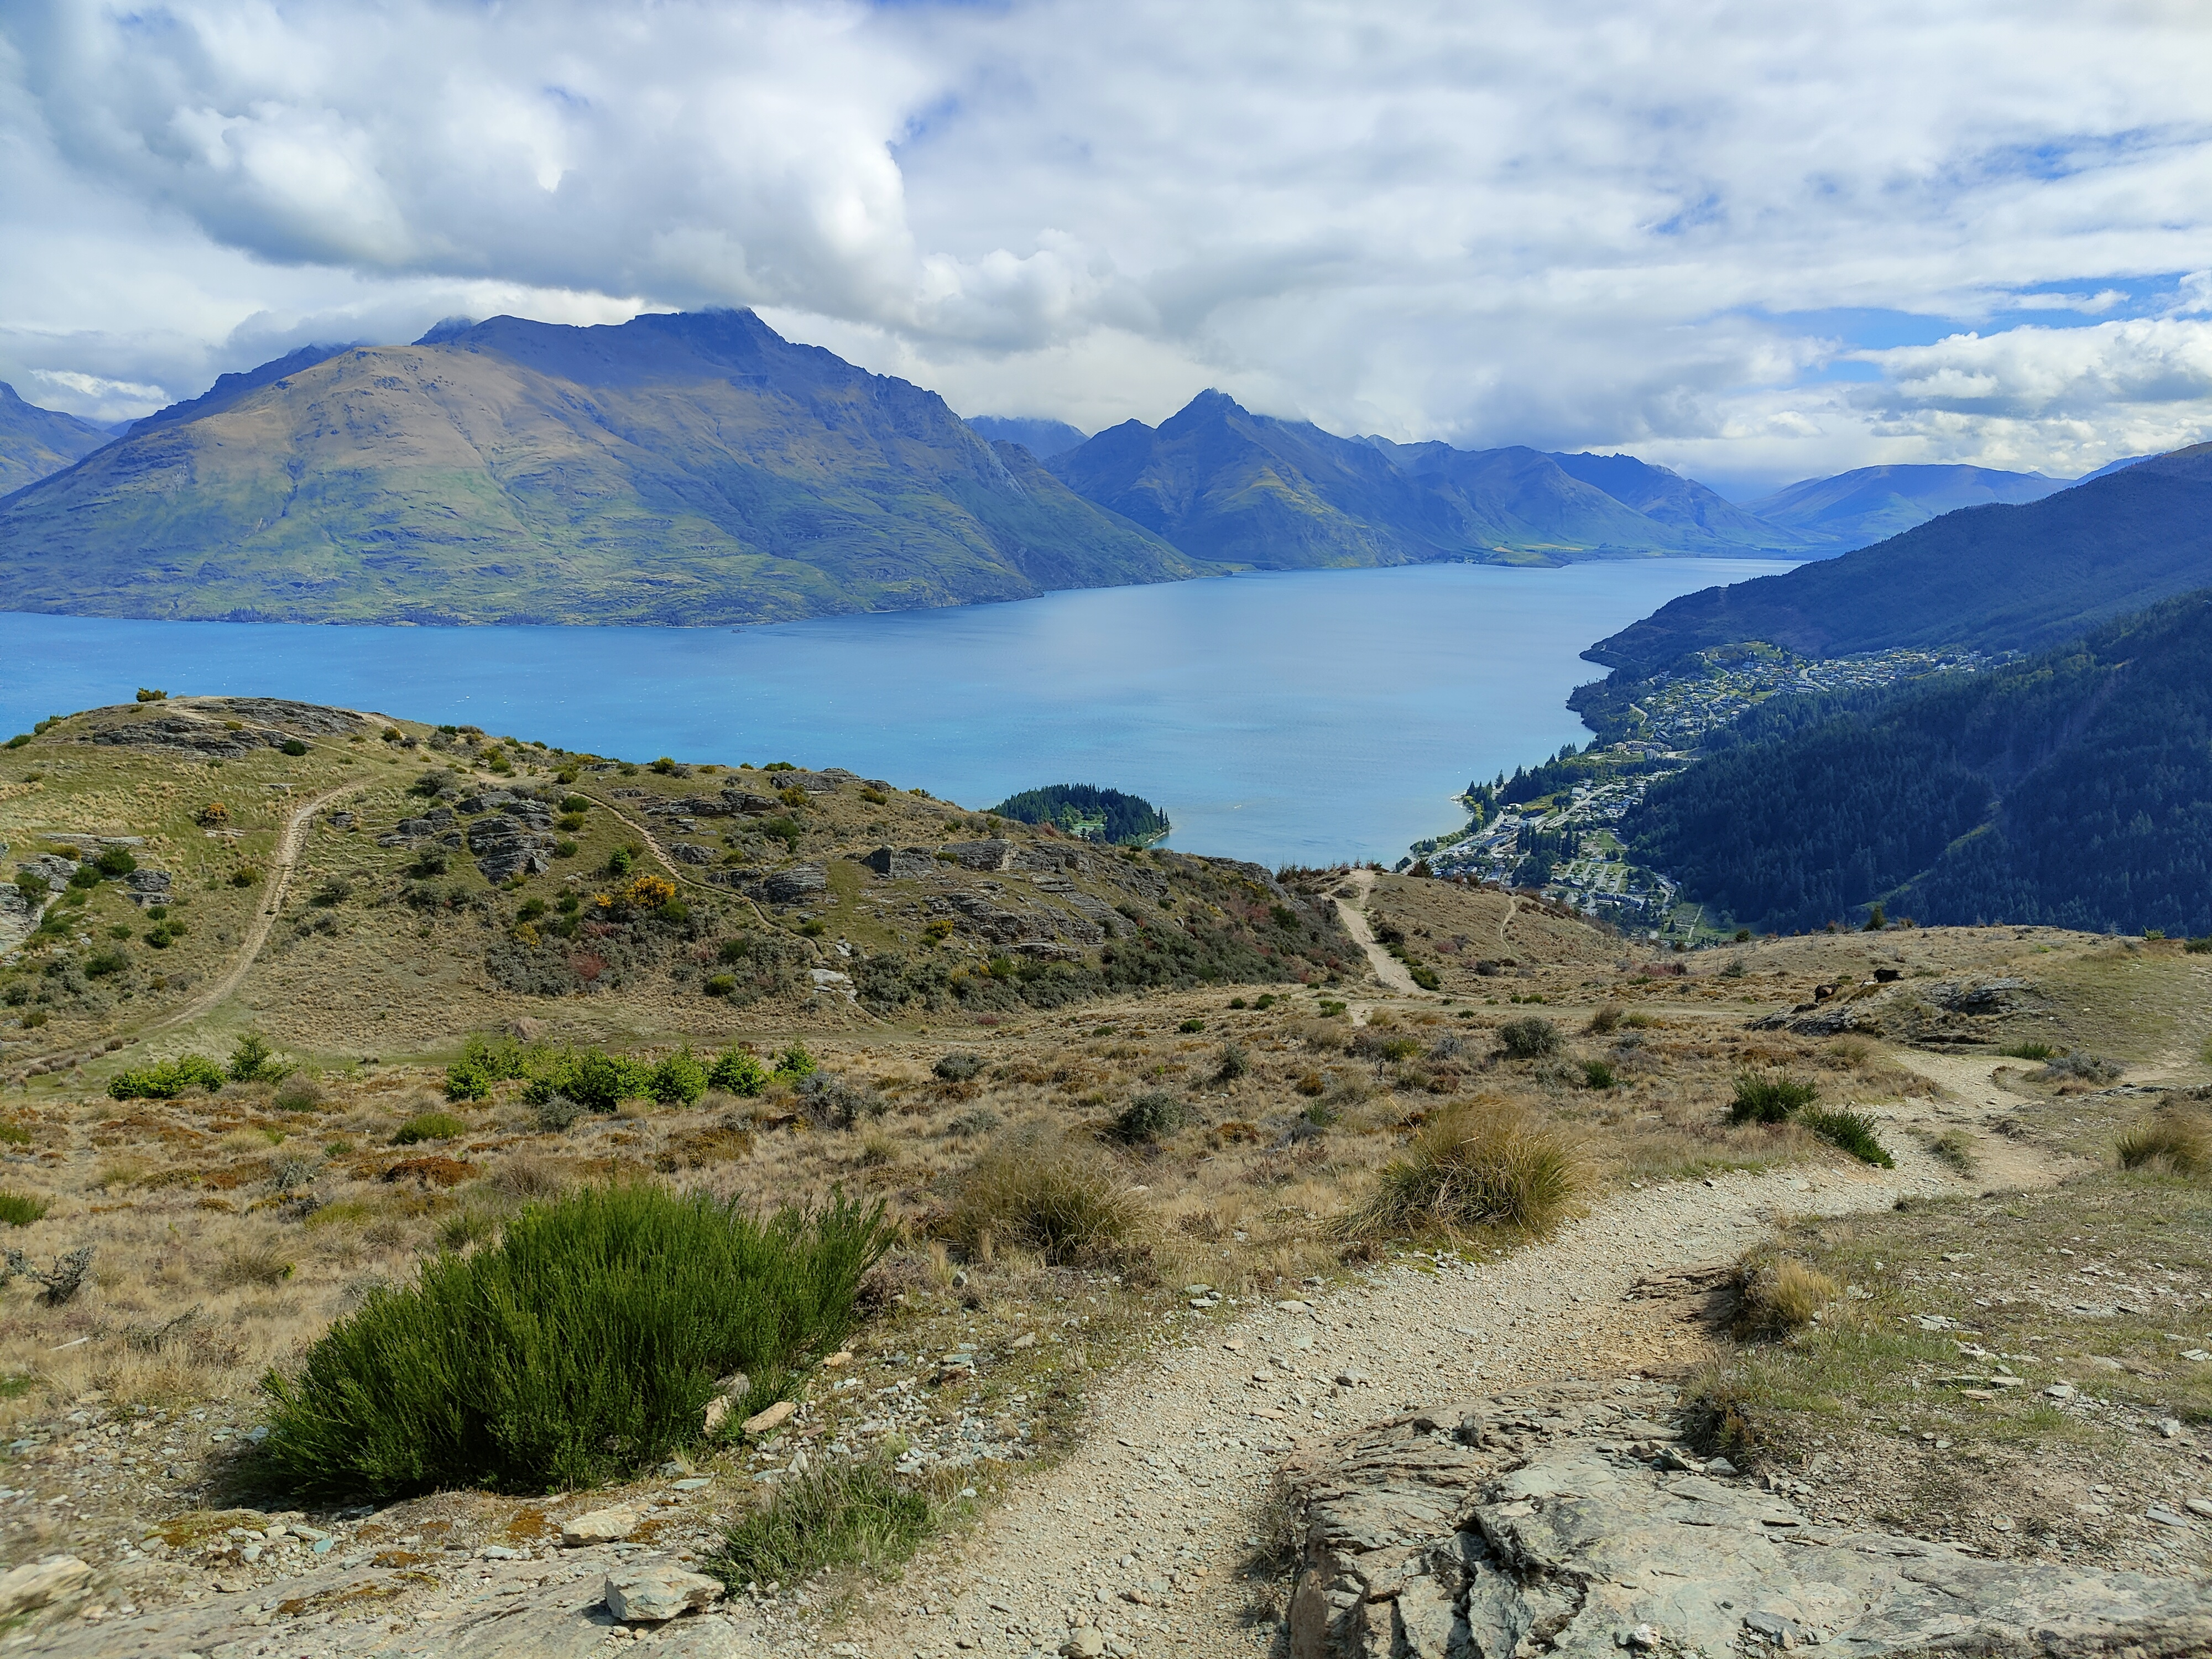 The view from the top of Queenstown Hill is stunning